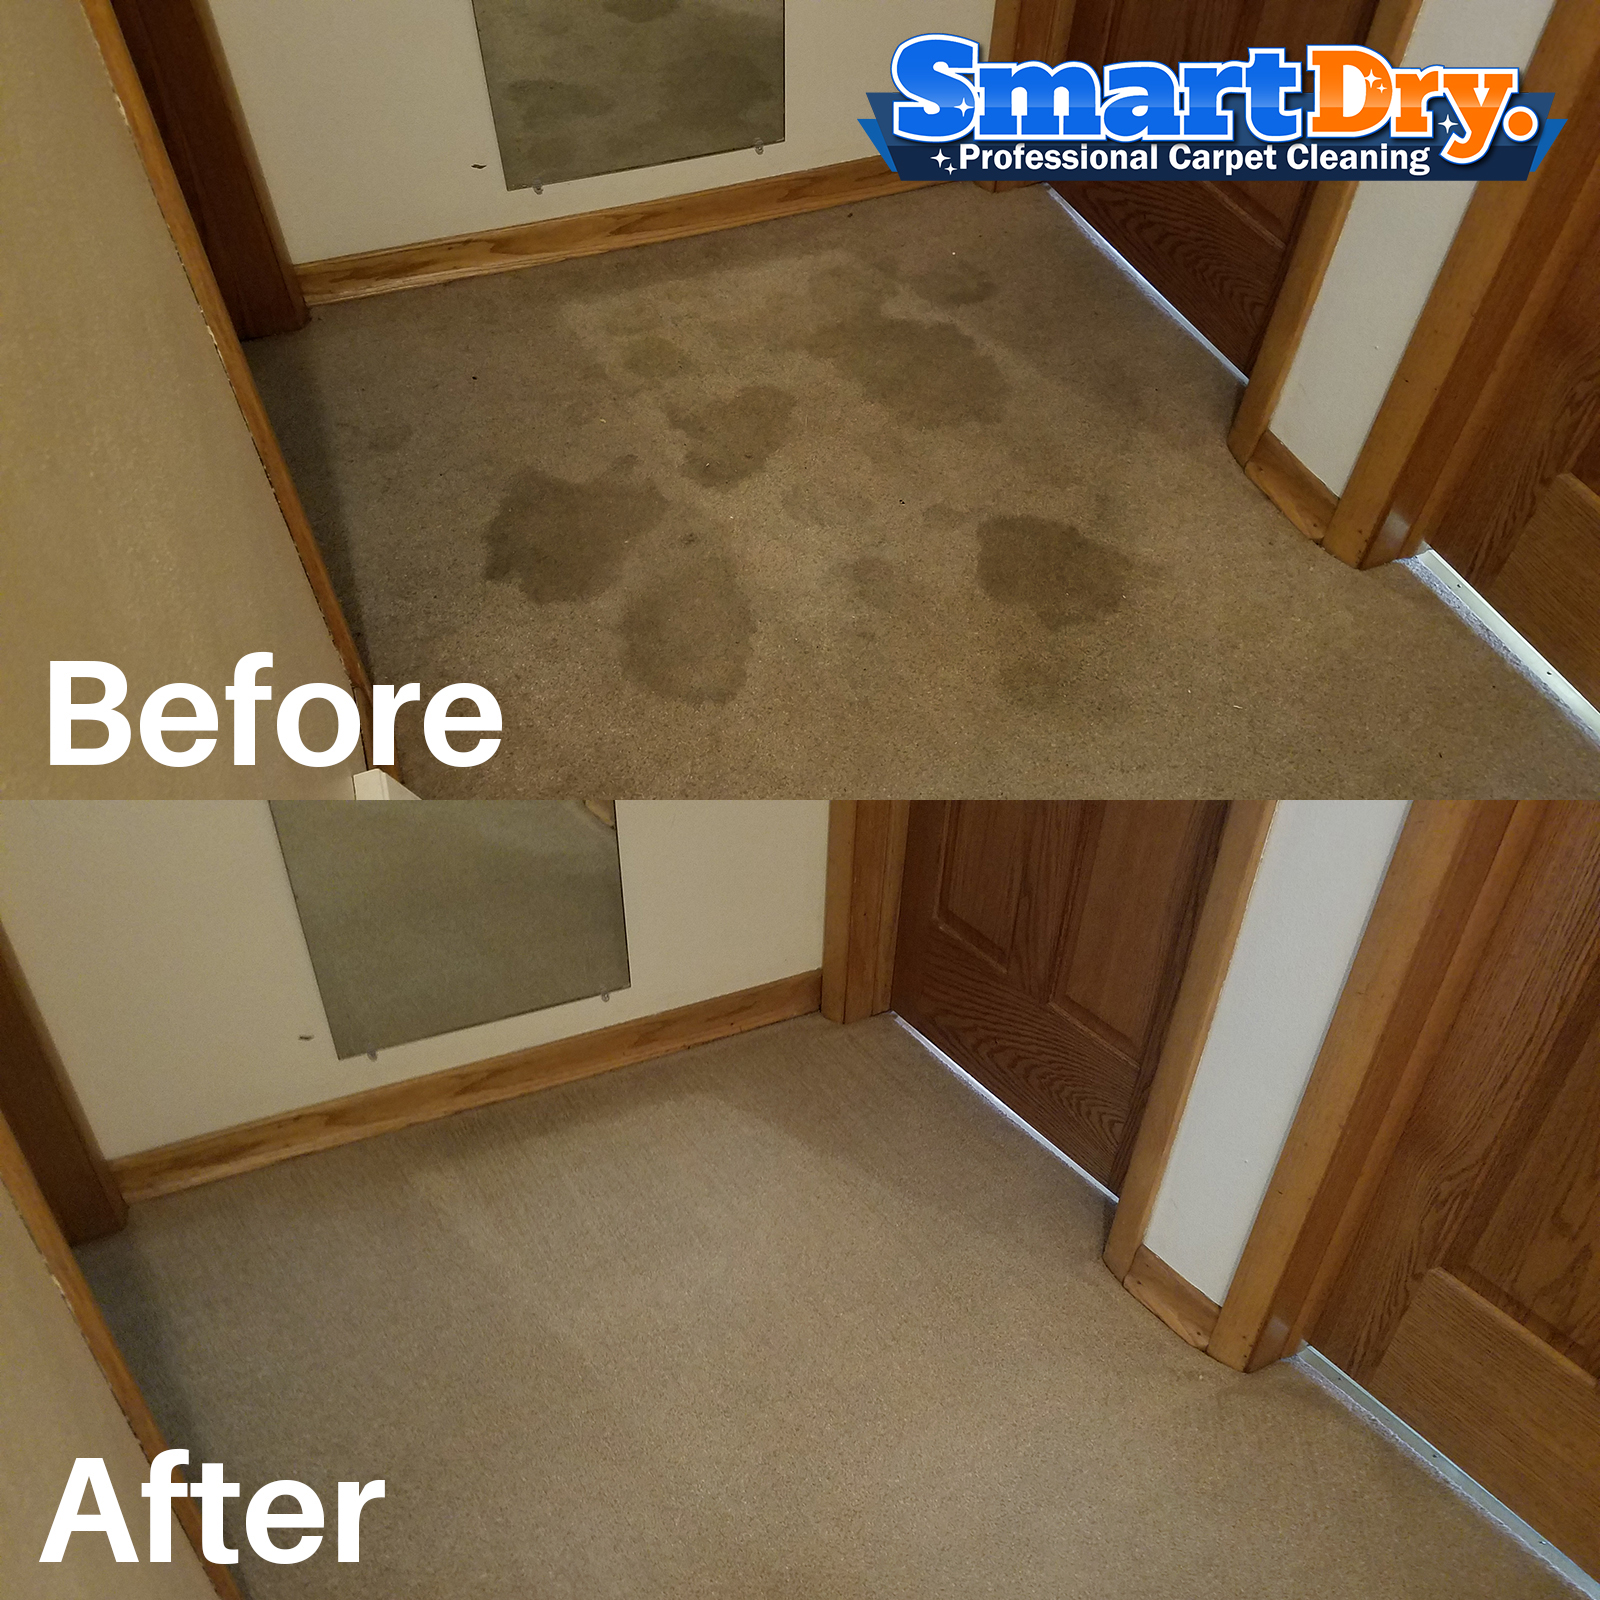 Carpet Cleaners San Diego Ca